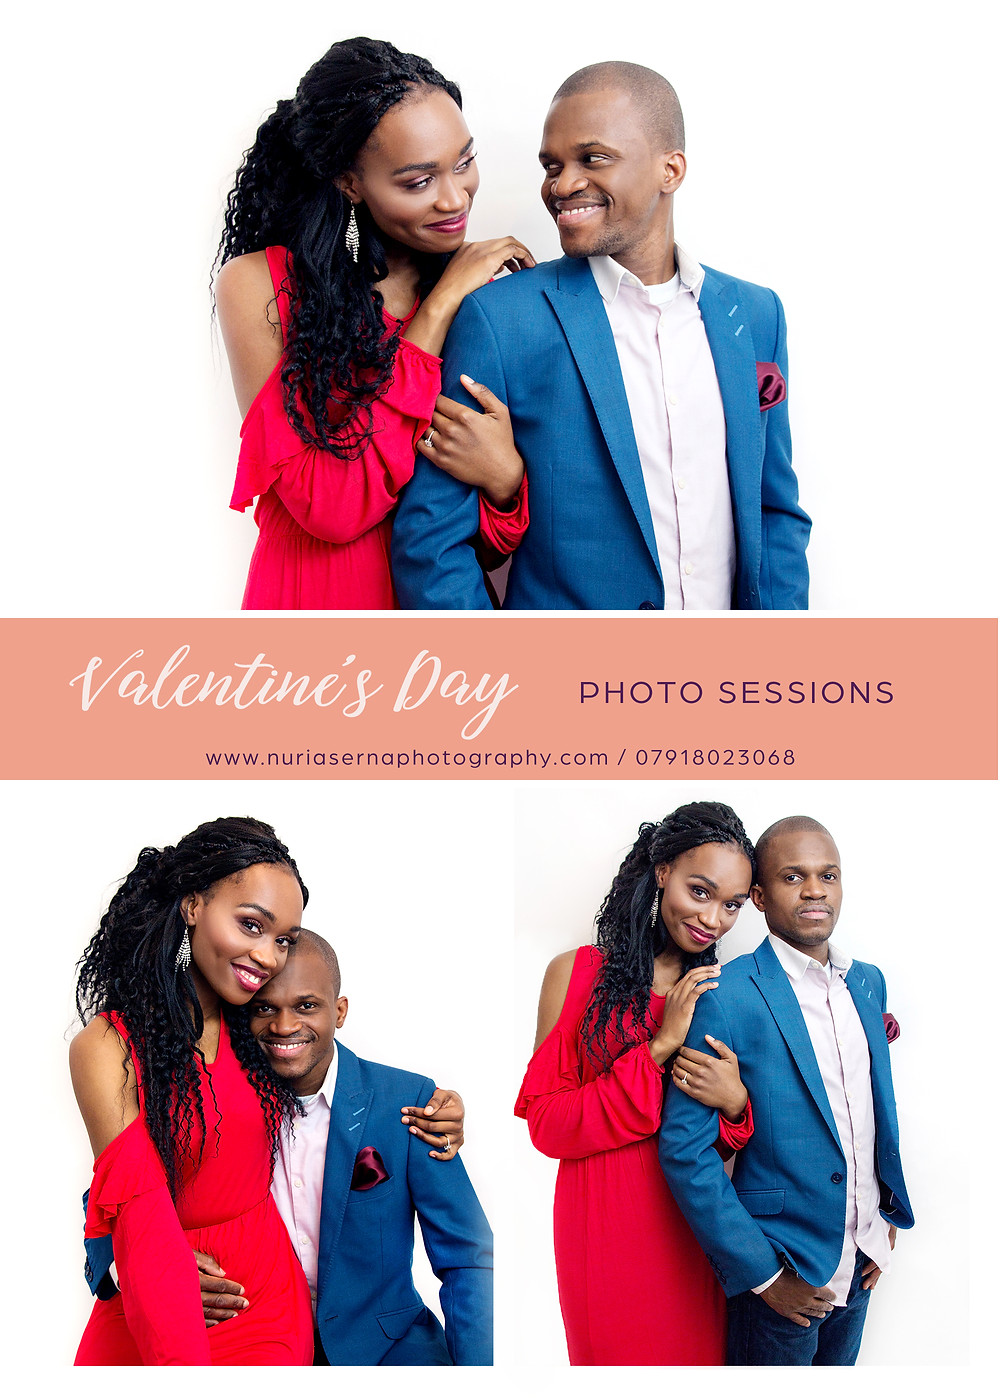 Valentine's photo session Cardiff